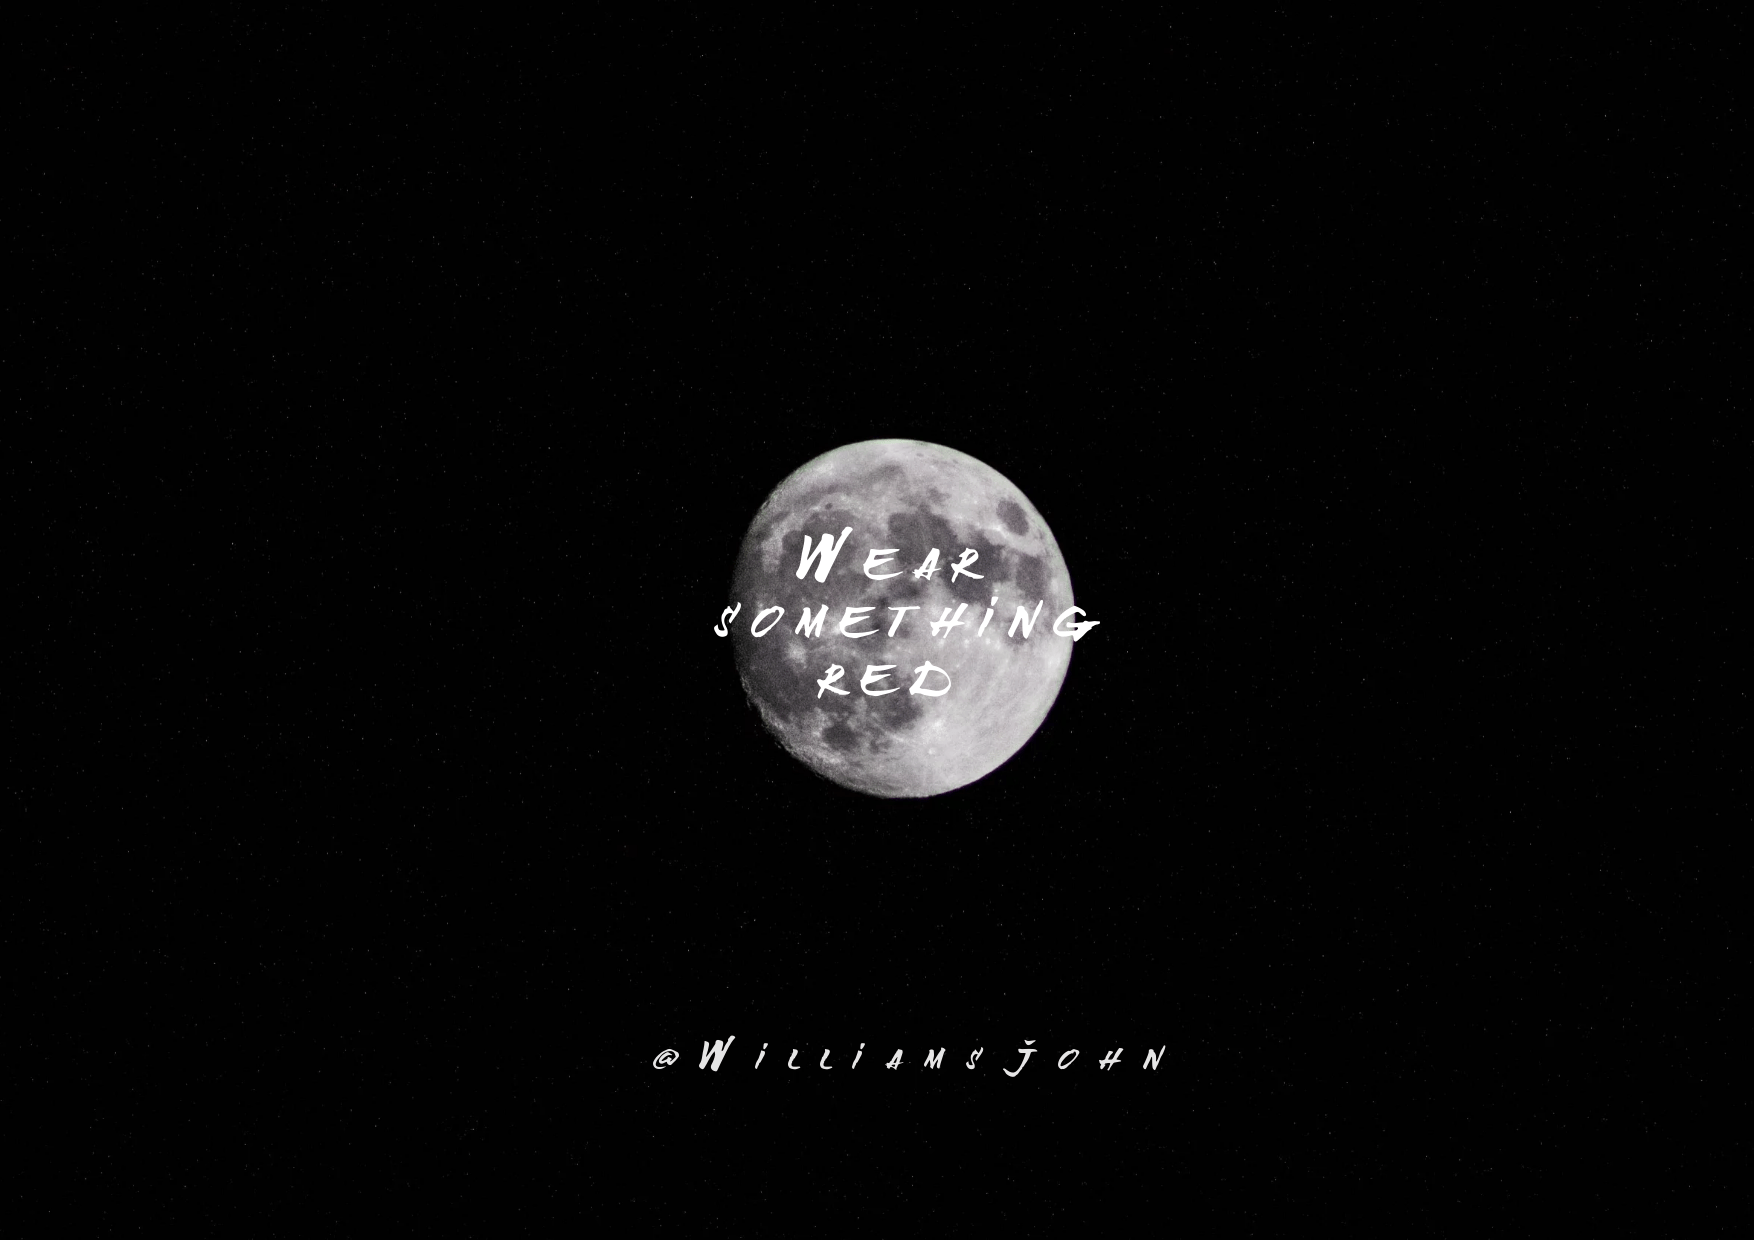 Black, And, White, Moon, Sphere, Monochrome, Computer, Wallpaper, Atmosphere, Photography, Font, Circle, Darkness,  Free Image